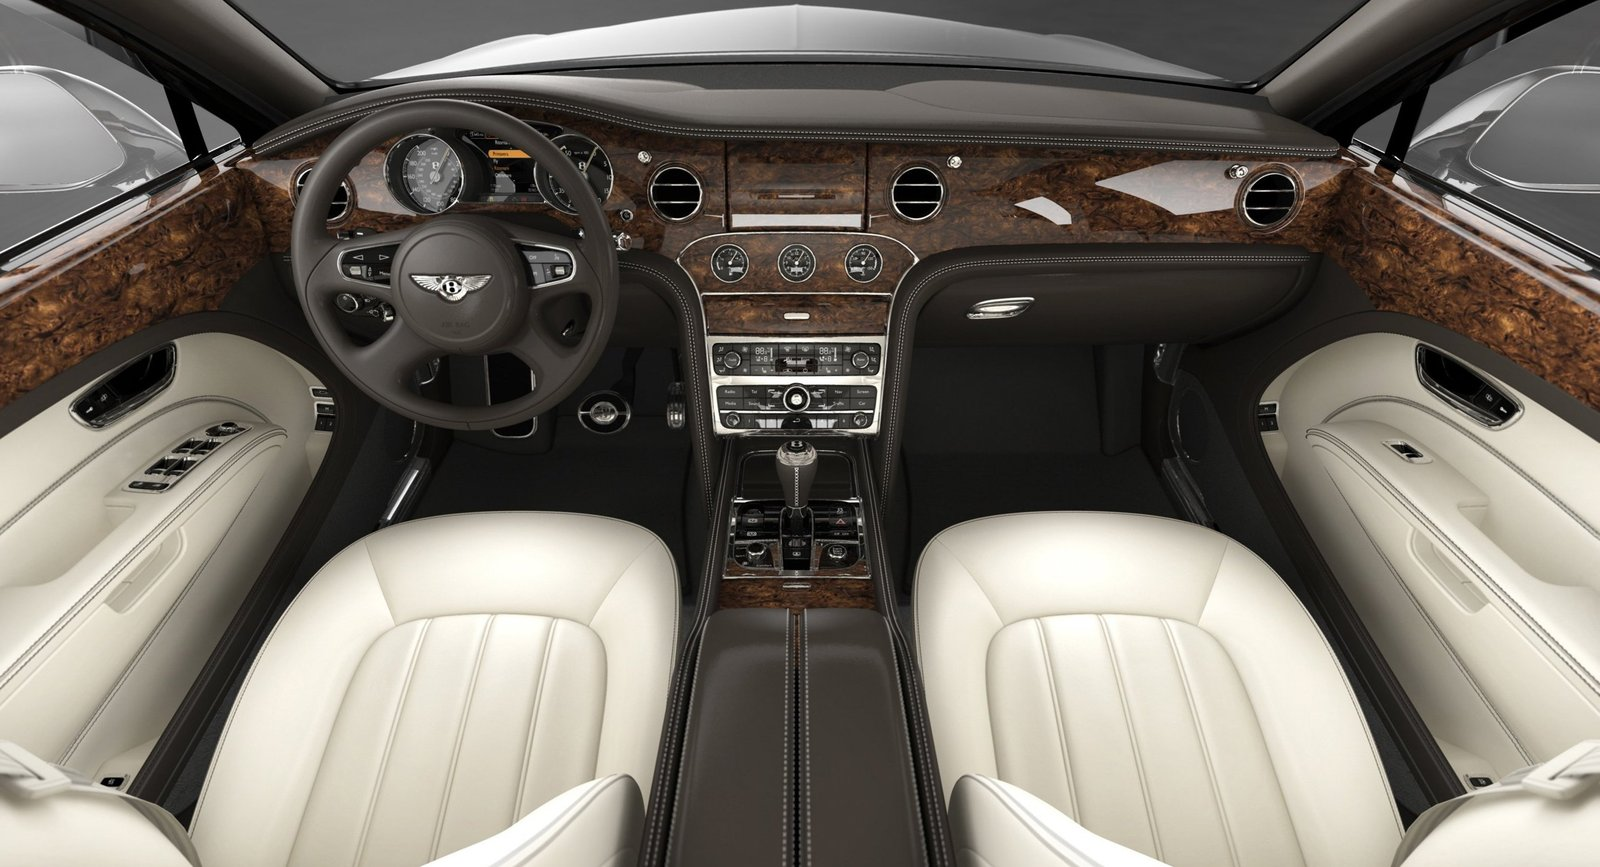 Toyota Kansas City >> 2011 Bentley Mulsanne Review, Ratings, Specs, Prices, and Photos - The Car Connection